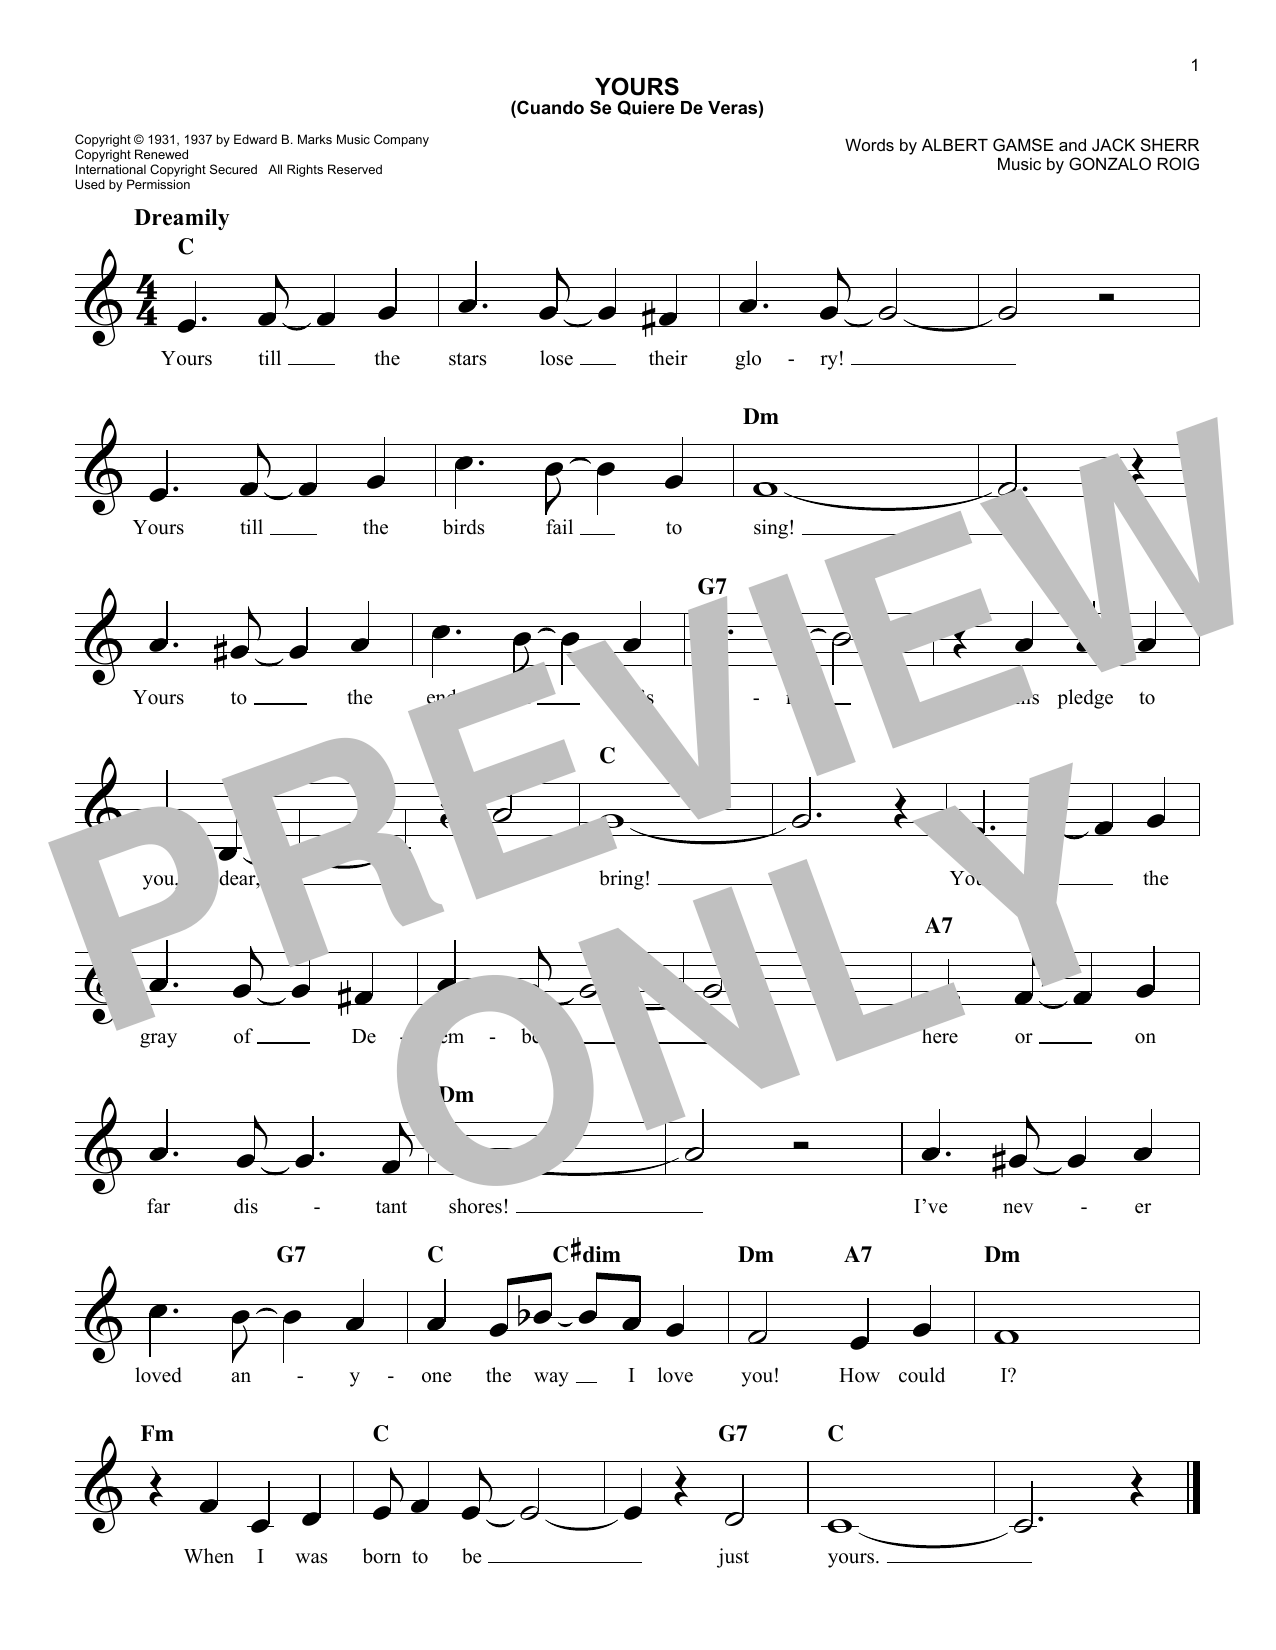 Yours (Quiereme Mucho) (Lead Sheet / Fake Book)